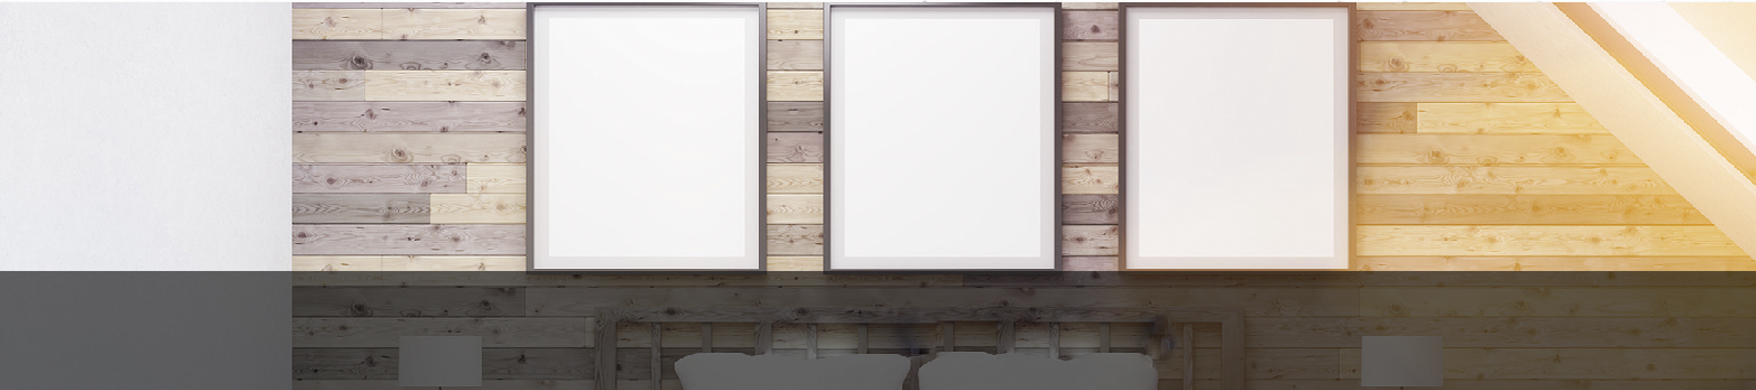 Best wall frames in Dubai and Best wall display in Dubai